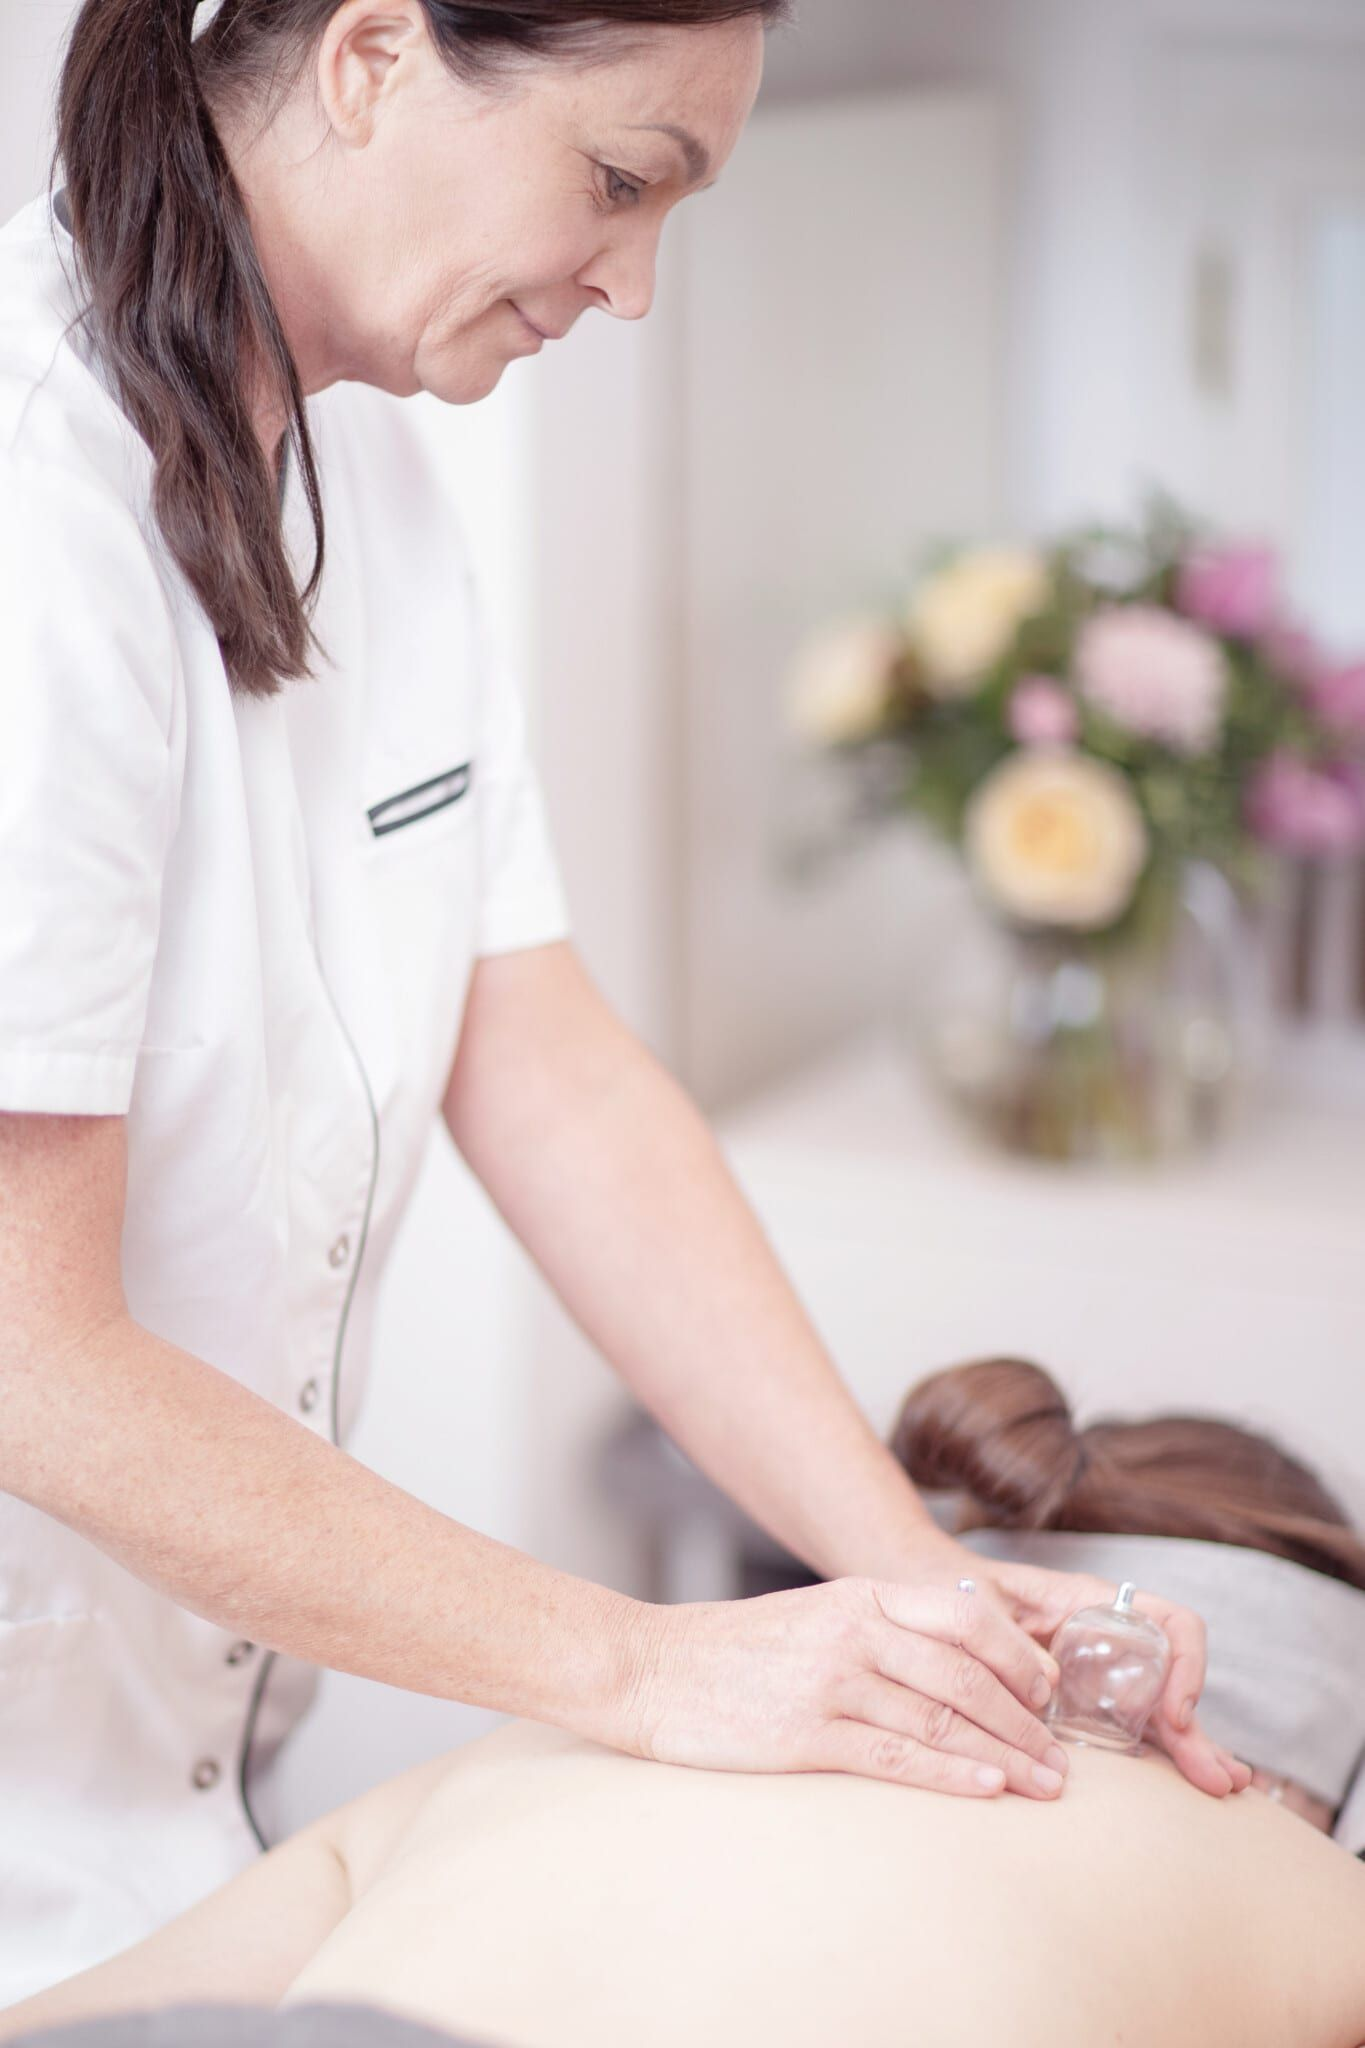 Beauty and Lifestyle SPA